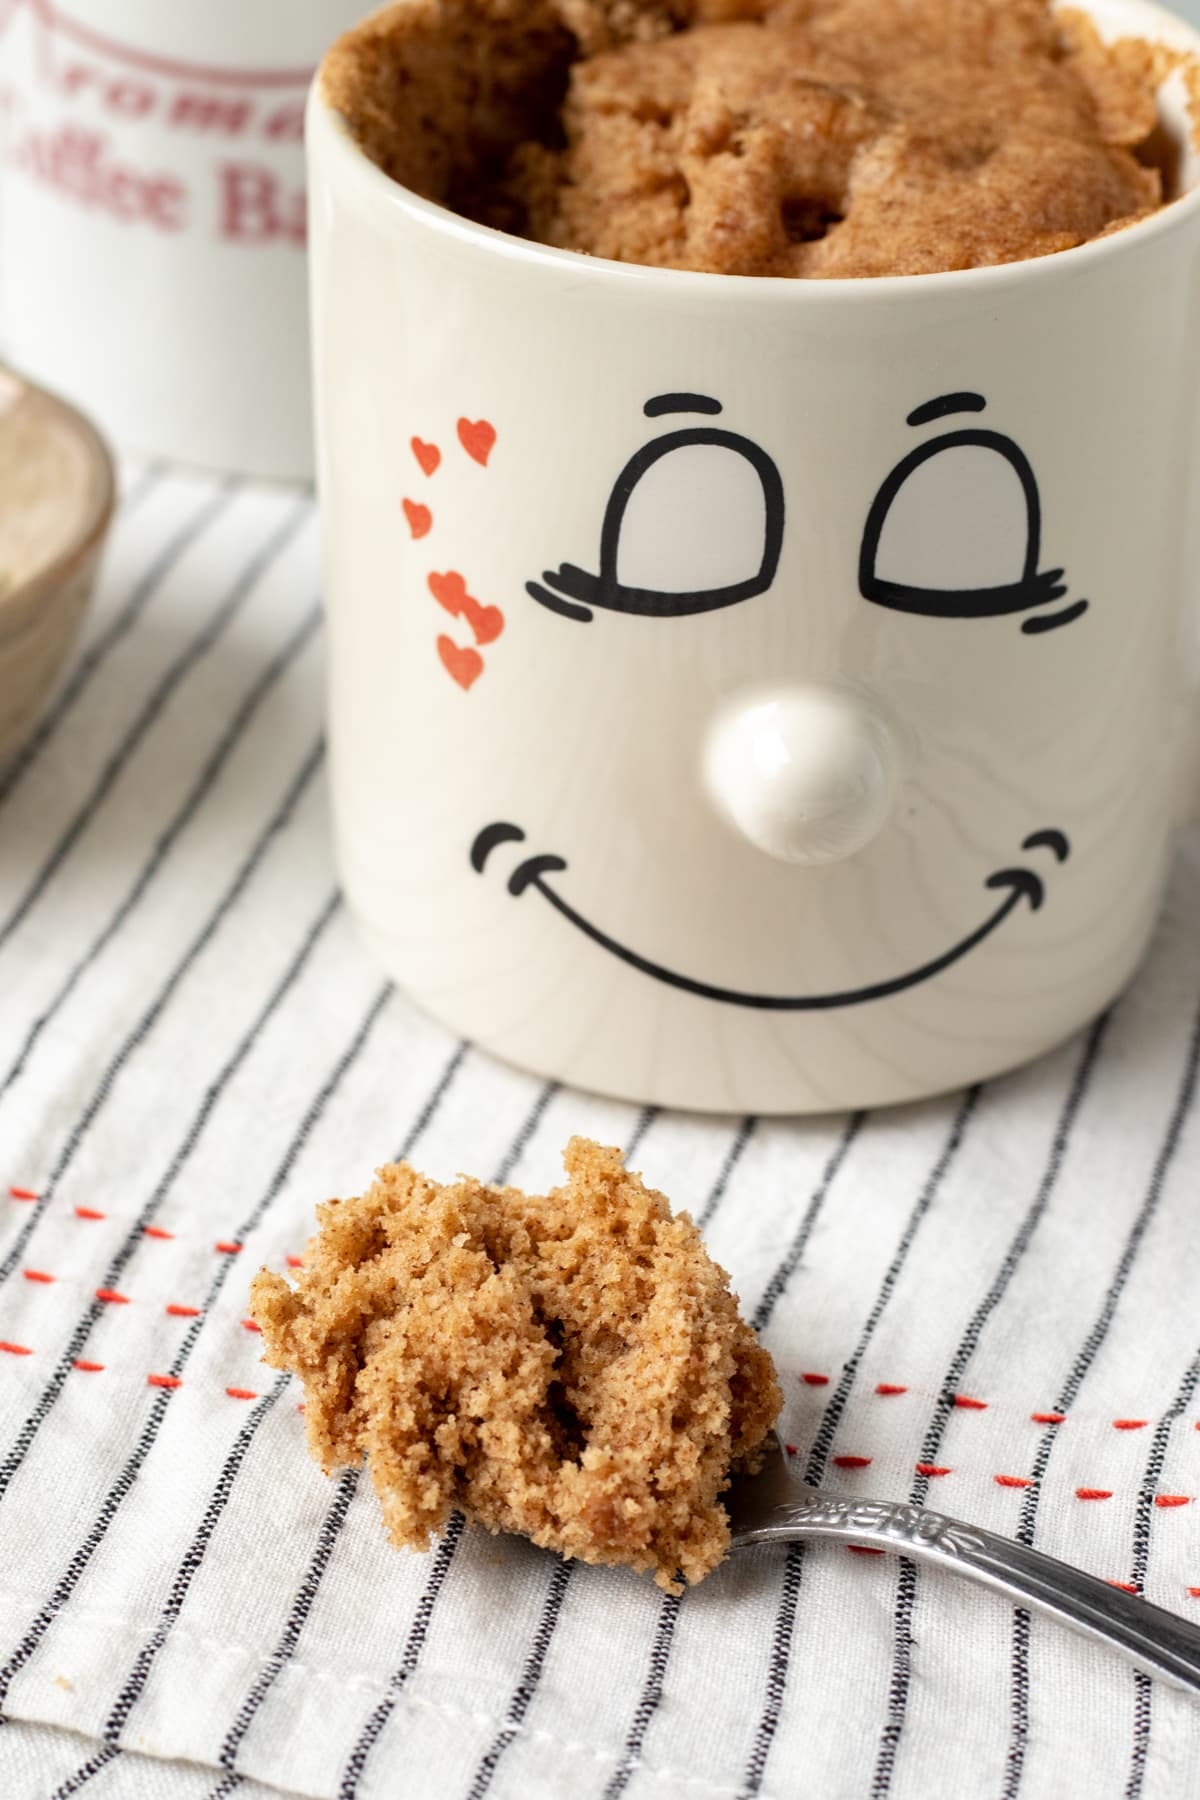 spoonful of mug cake resting in front of a cute mug with a smiley face on it